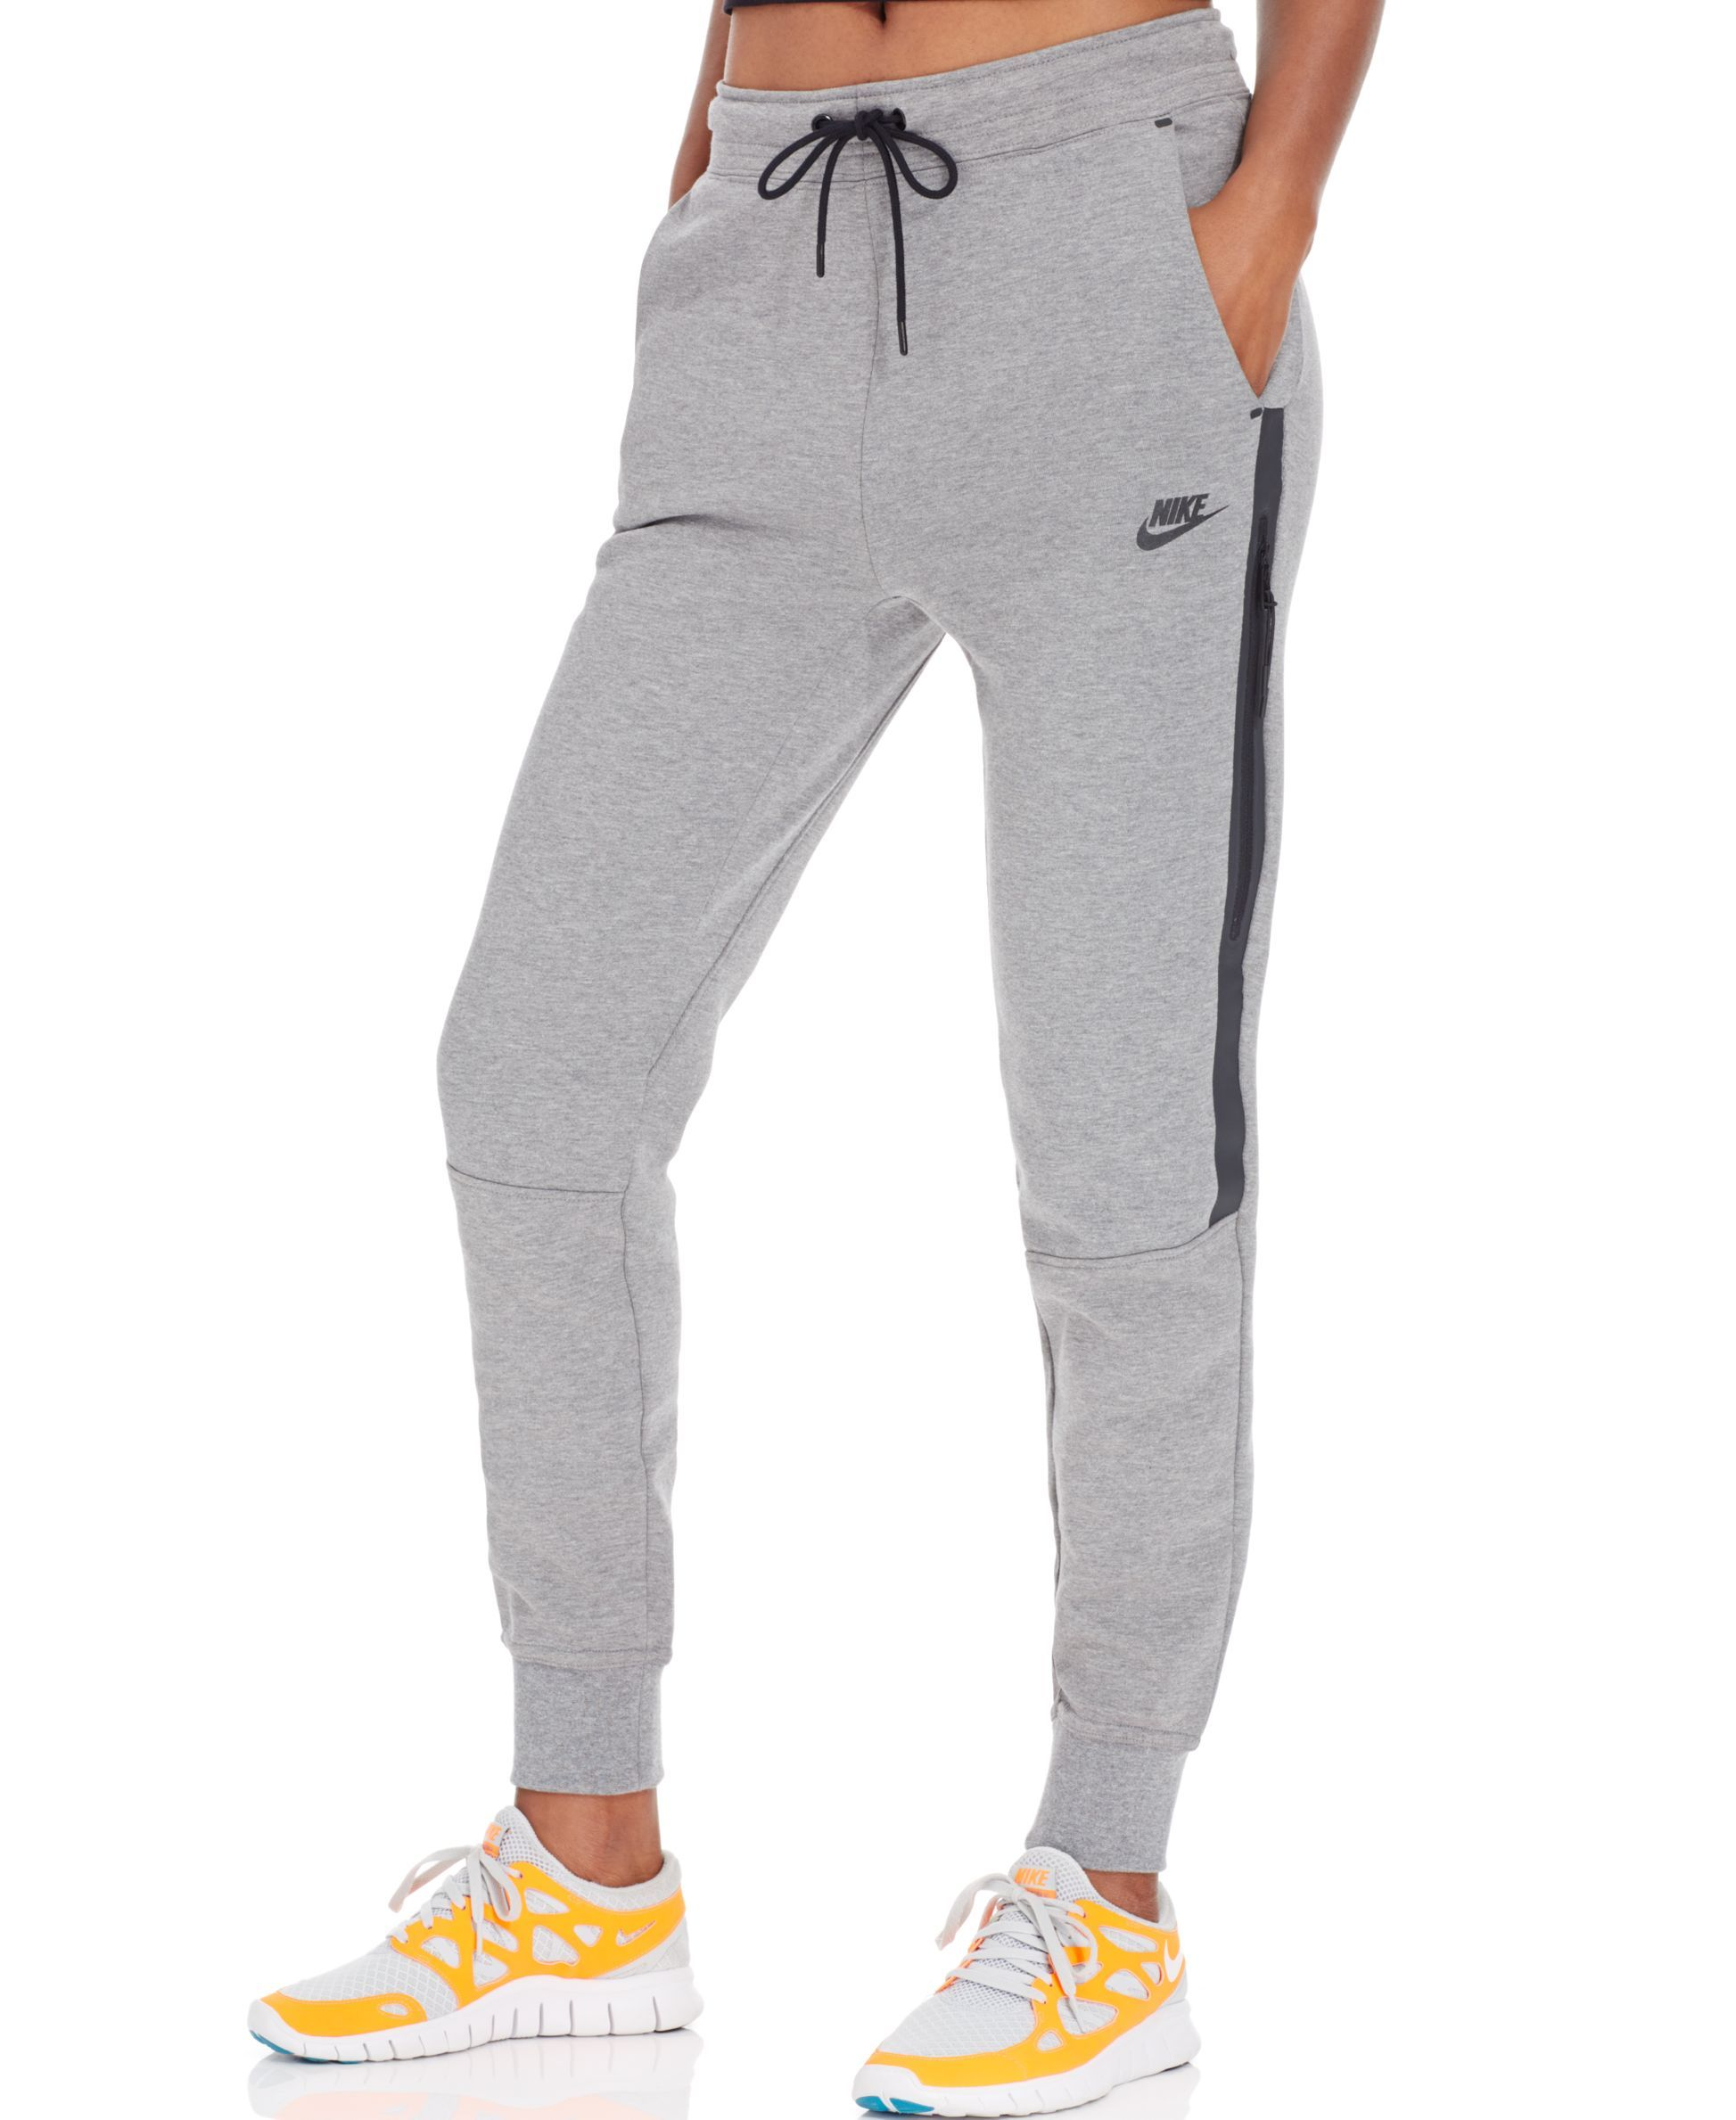 Innovative Nike Modern Skinny Sweatpants  Pants  Women  Macy39s